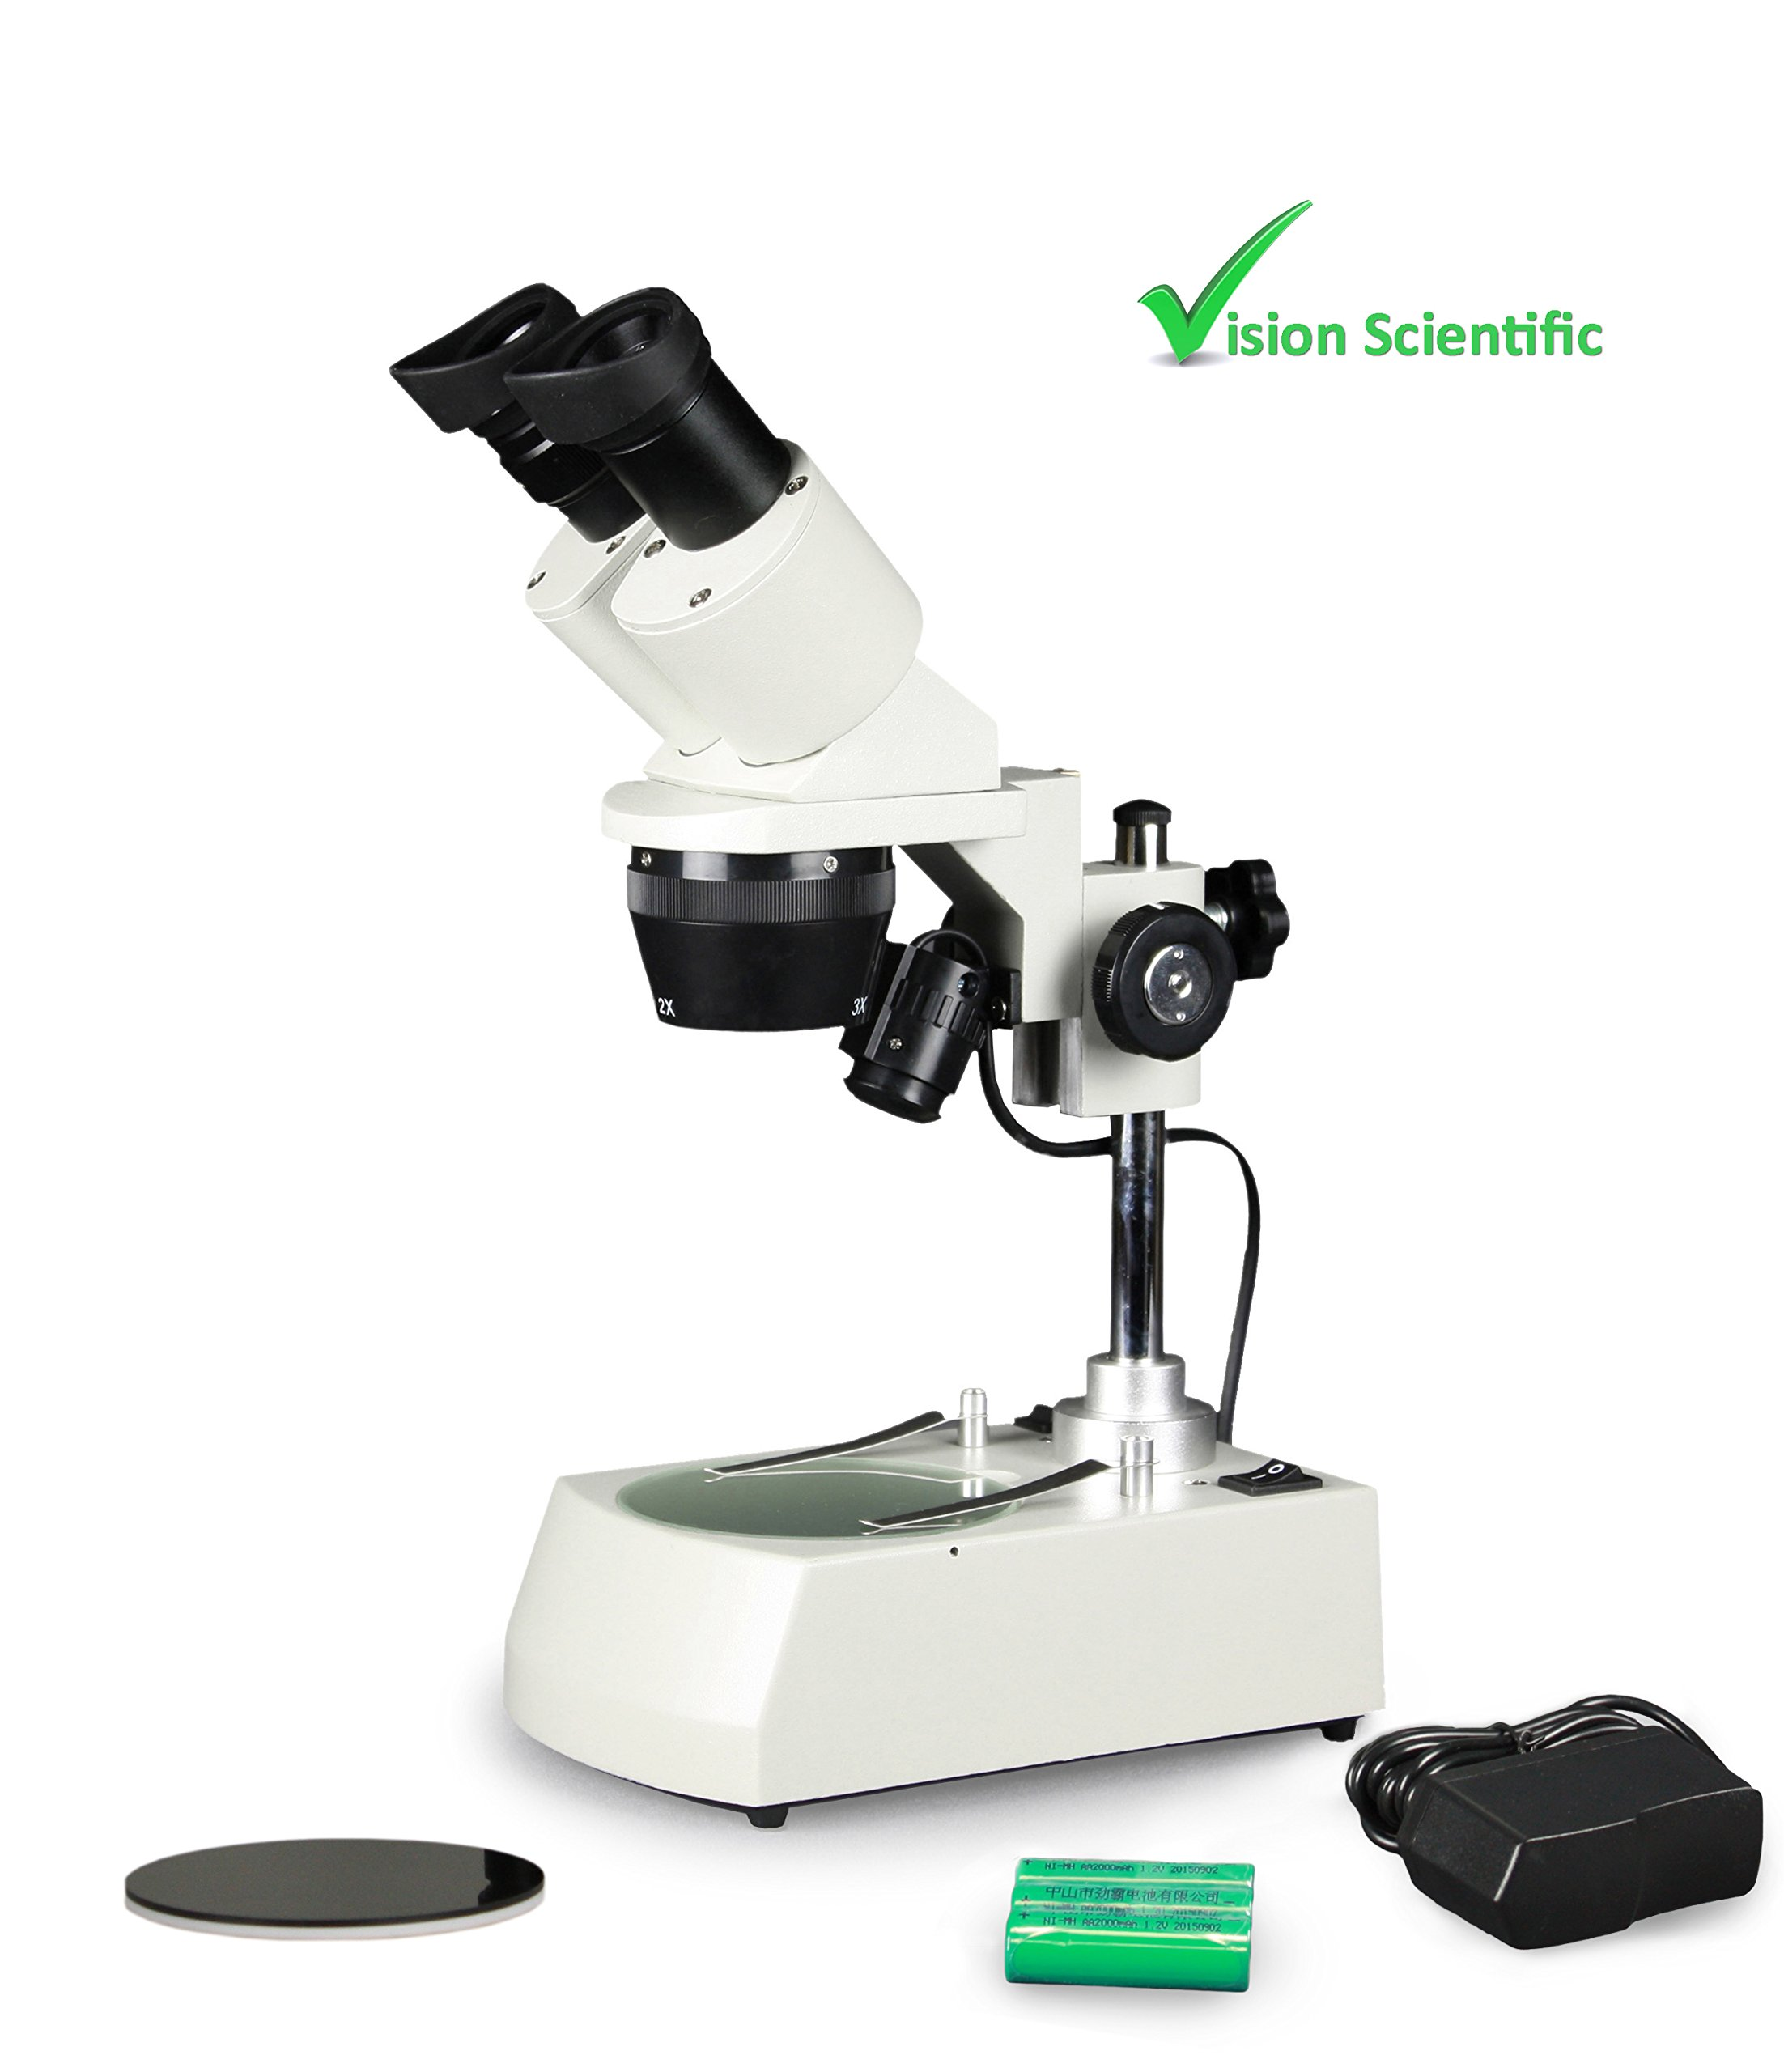 Vision Scientific VMS0002-RC-234 Tri-Power Binocular Stereo Microscope, 2x and 4x Objective, Paired 10x WF Eyepiece, 20x–40x Magnification, Top and Bottom LED, Cordless Rechargeable Battery